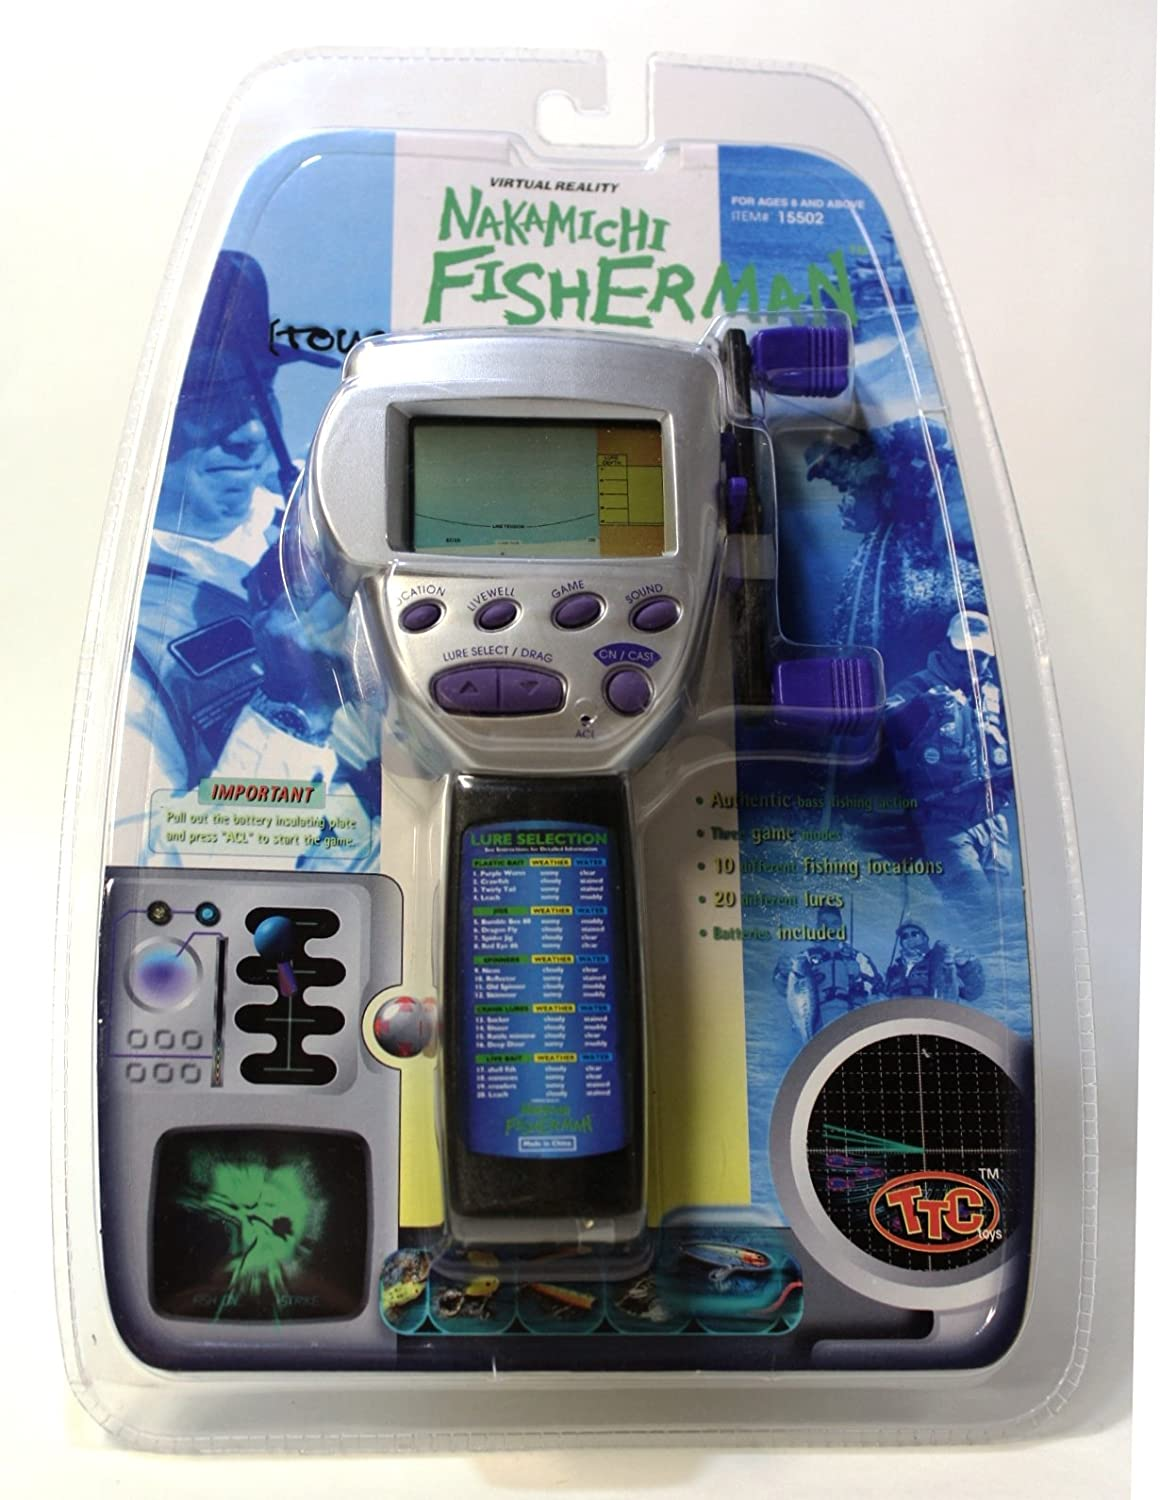 Nakamichi Fisherman Tourament Version Electronic Speaker Diagram And Parts List For Audioequipmentparts Fishing Game Toys Games